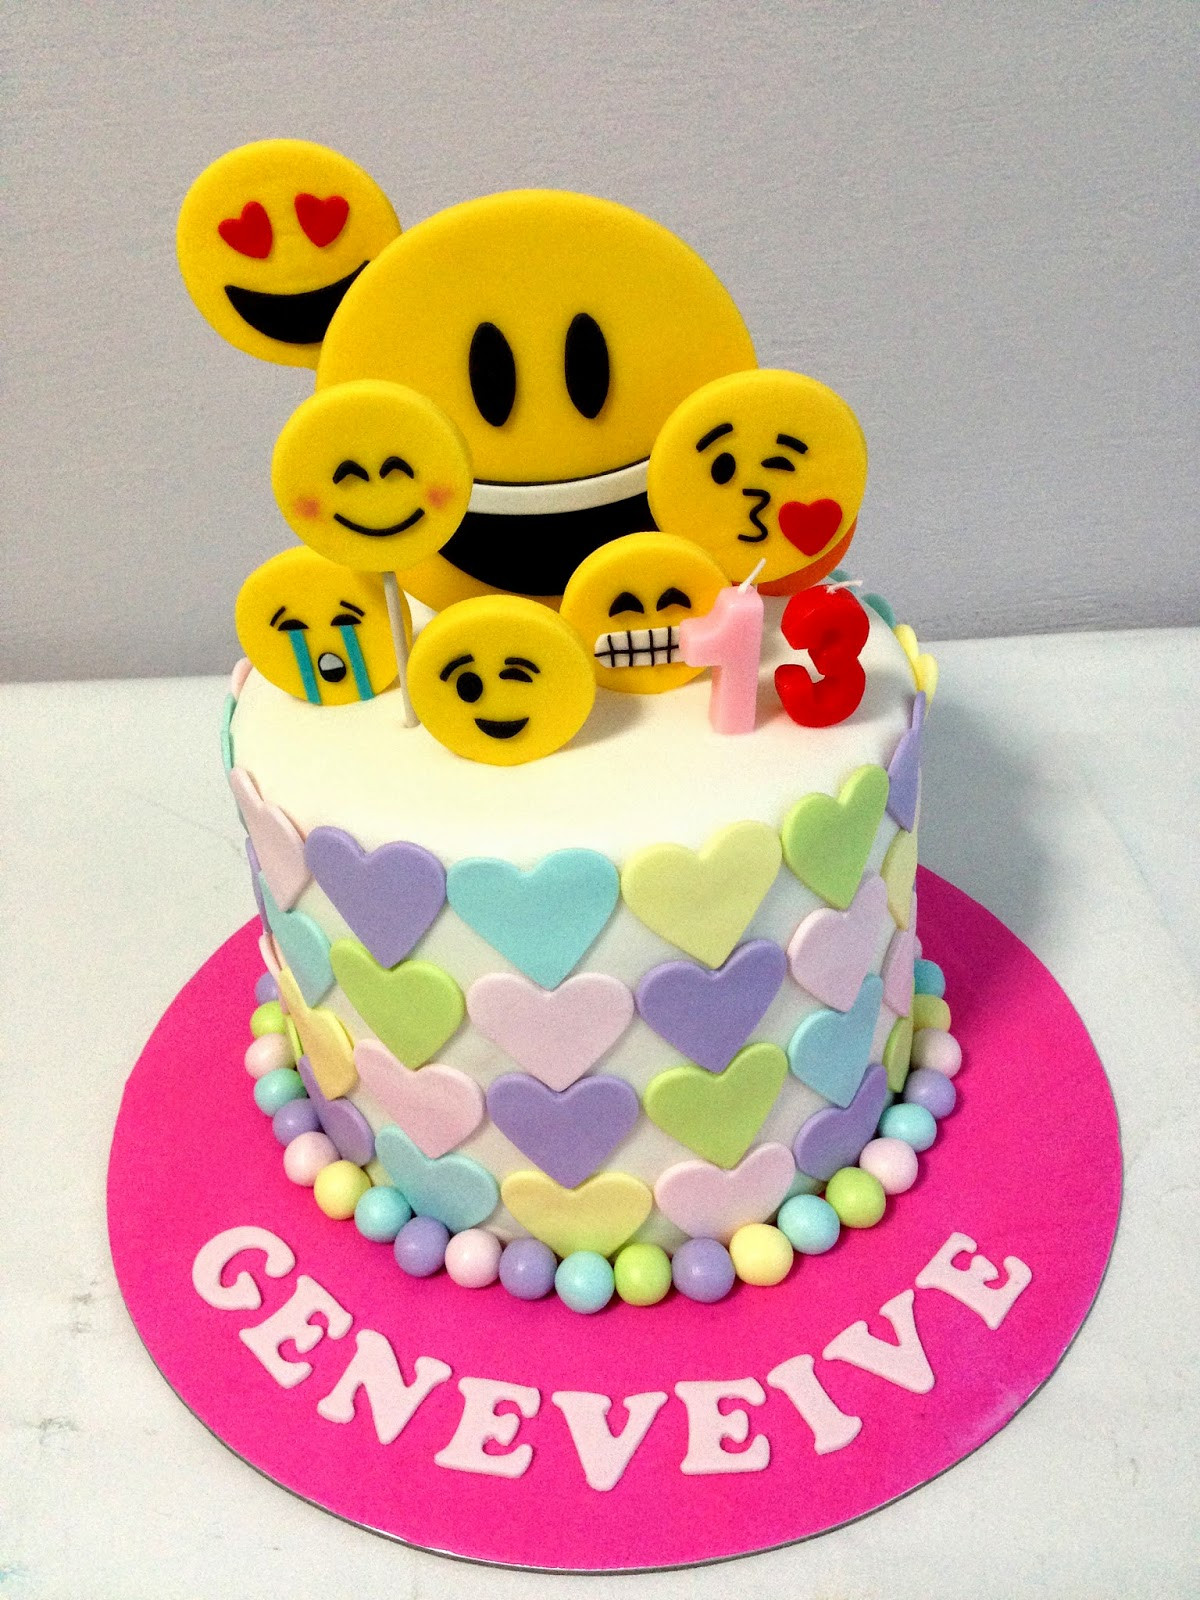 Best ideas about Emoji Birthday Cake . Save or Pin Oven Creations Now.